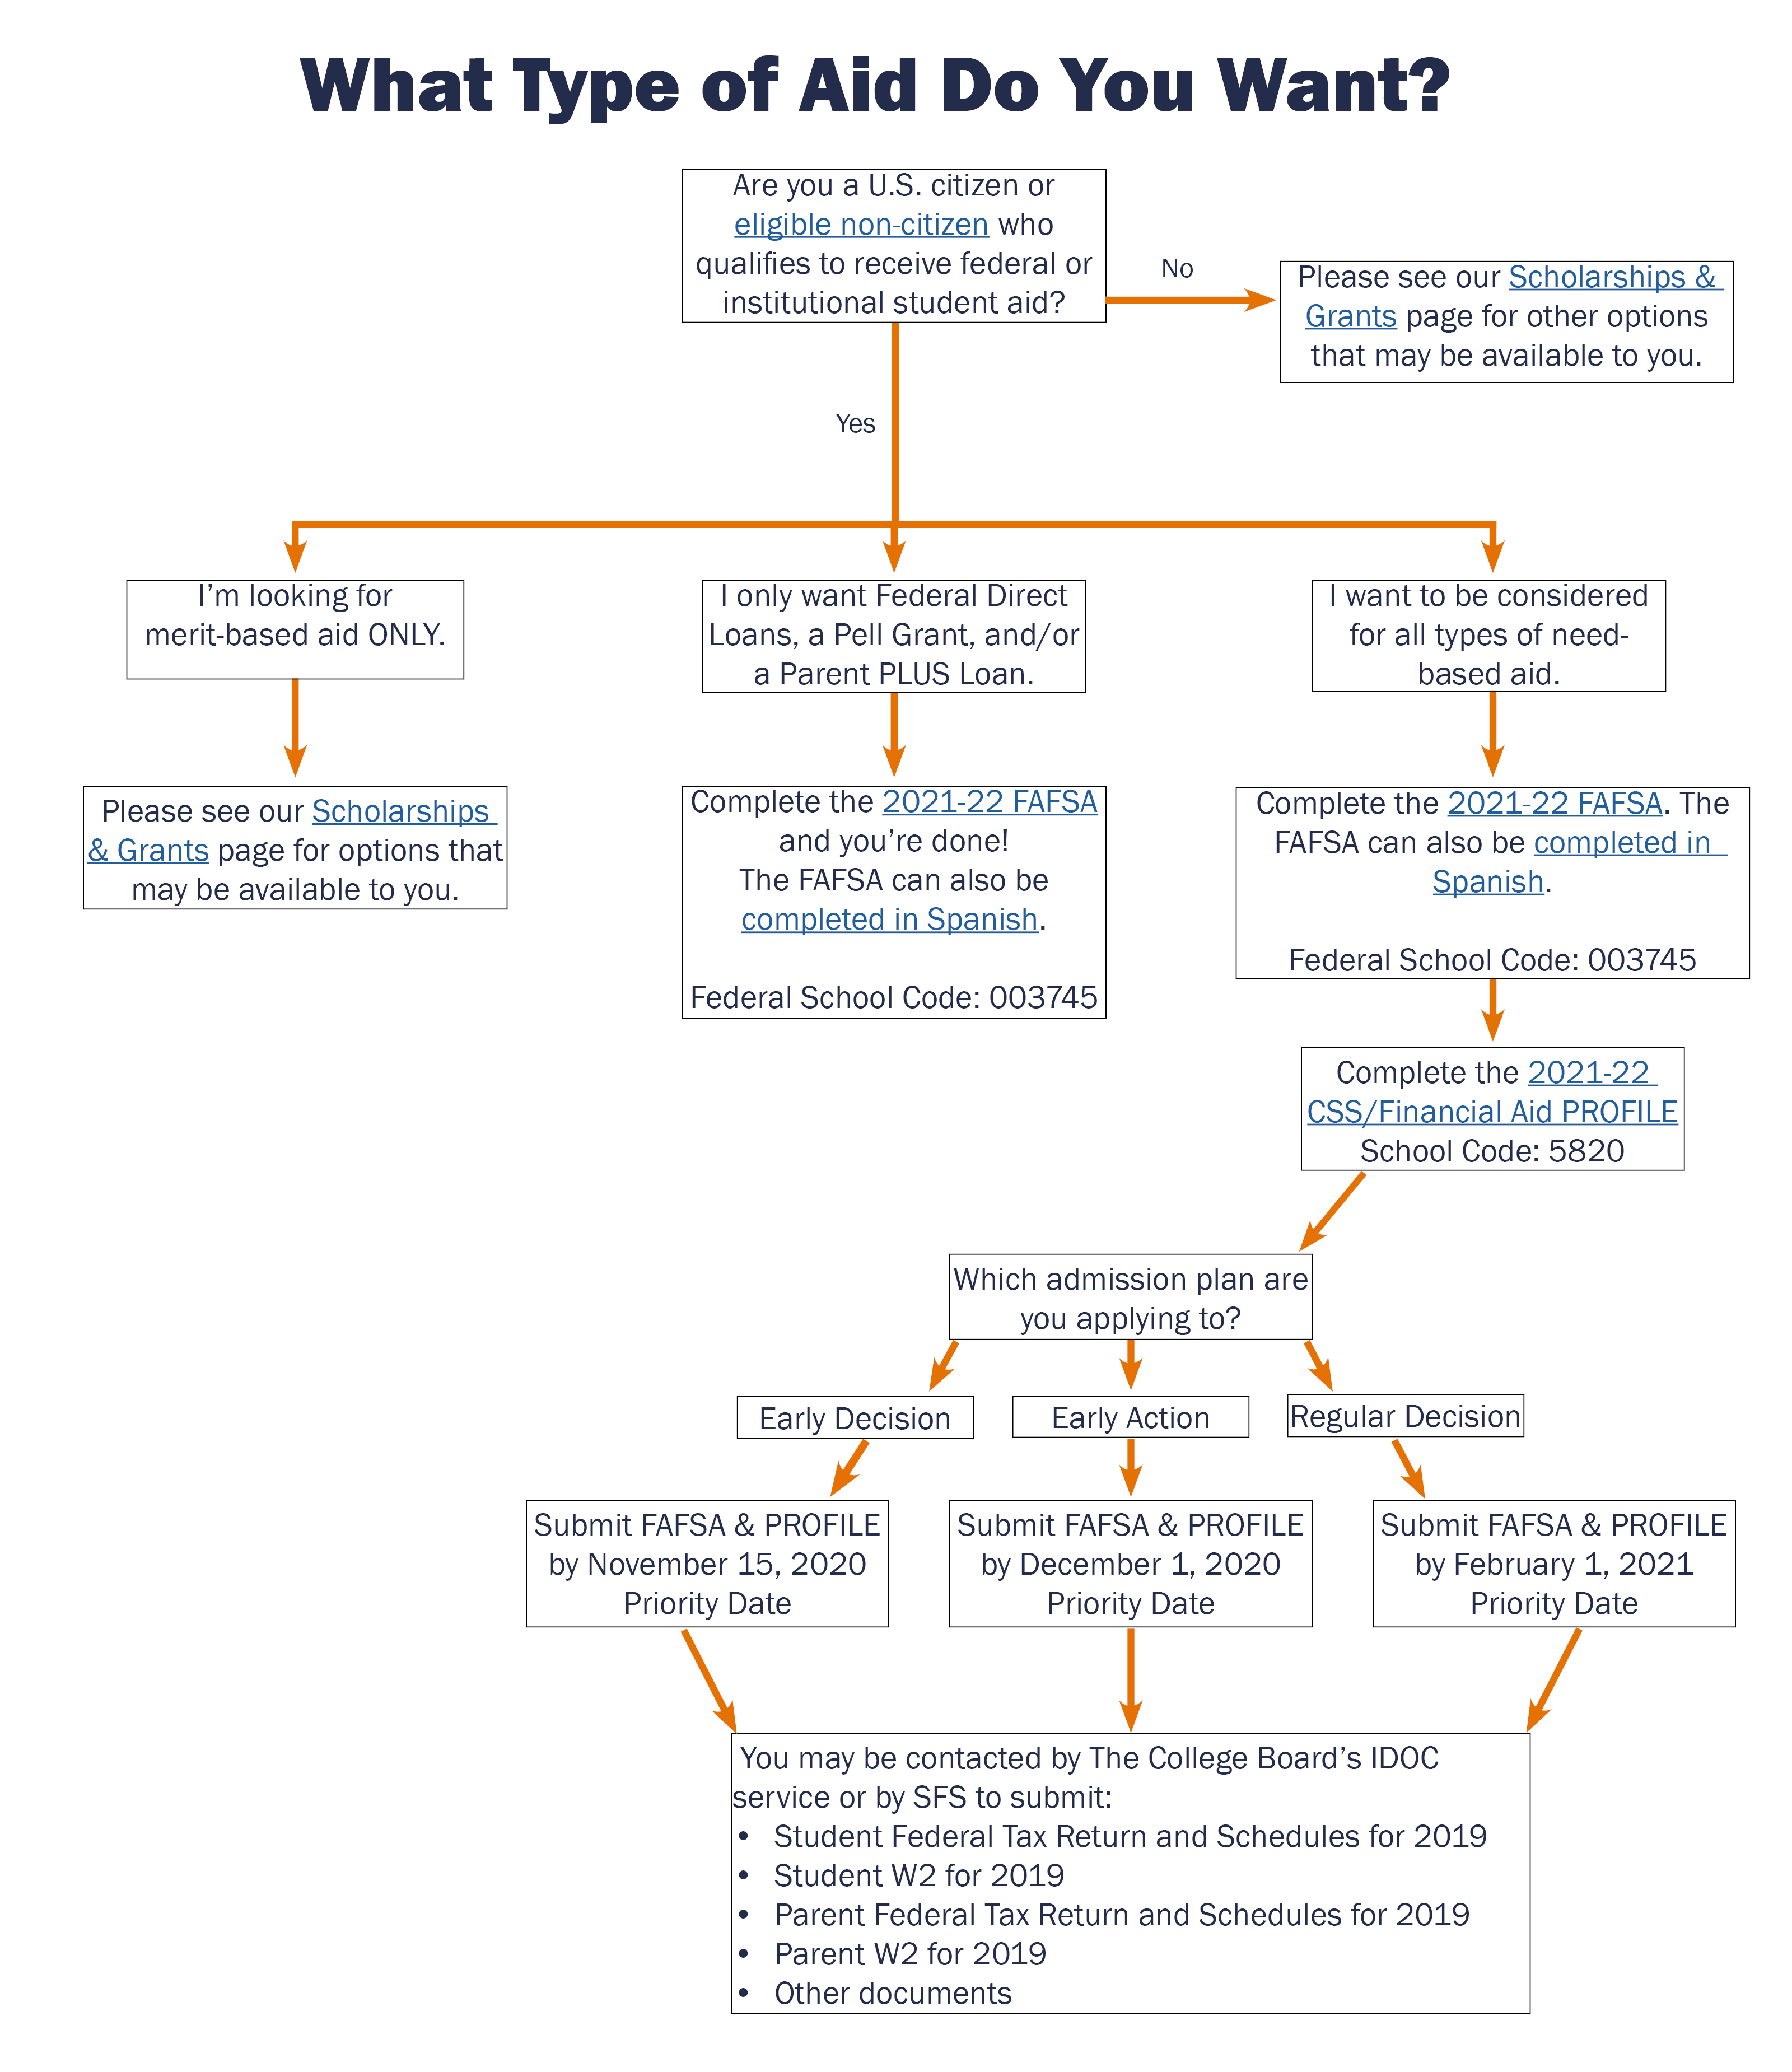 A flow chart is displayed containing the information below on how to apply for financial aid at UVA.